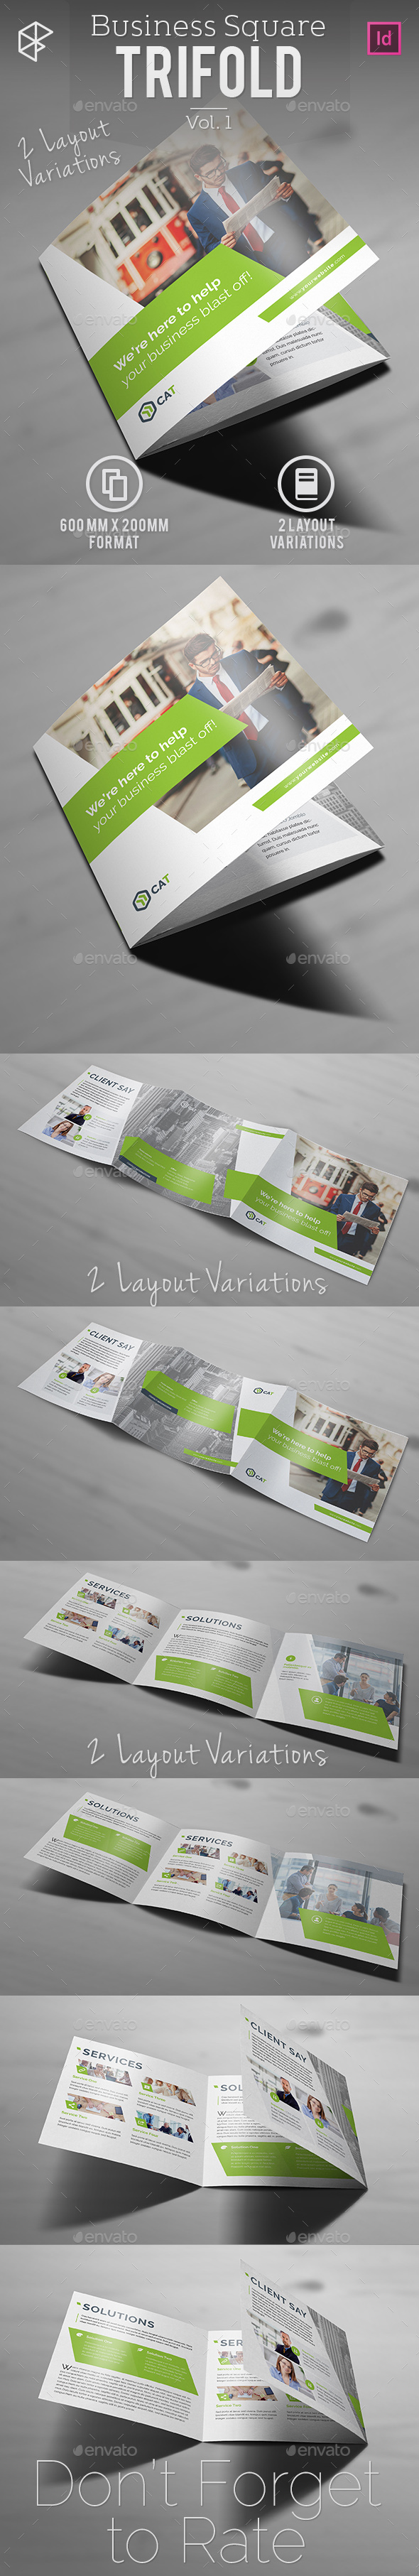 Business Square Trifold Vol. 1 - Corporate Brochures